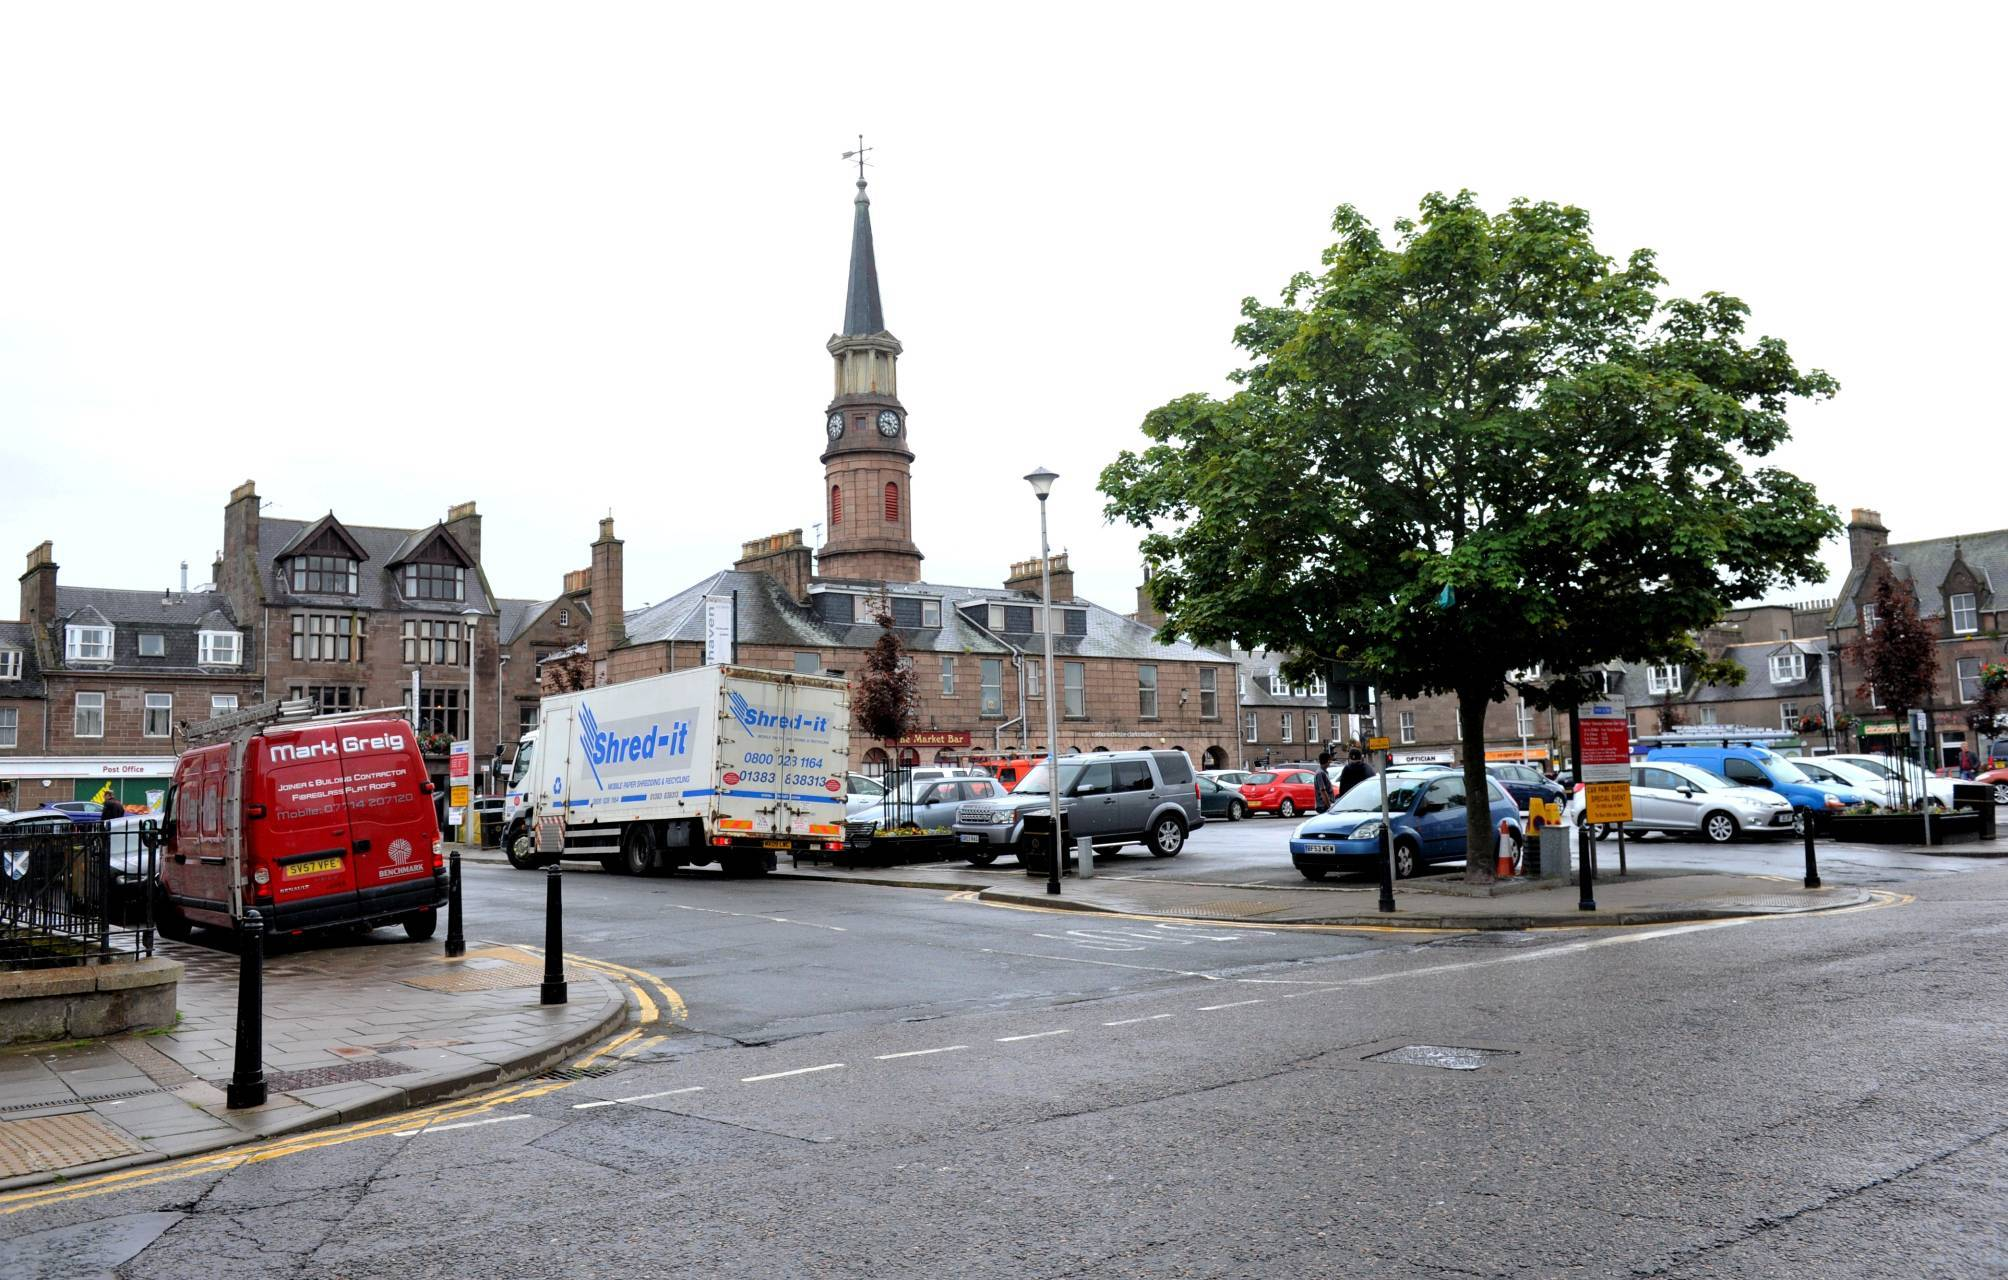 The attack happened in the Market Square area of Stonehaven